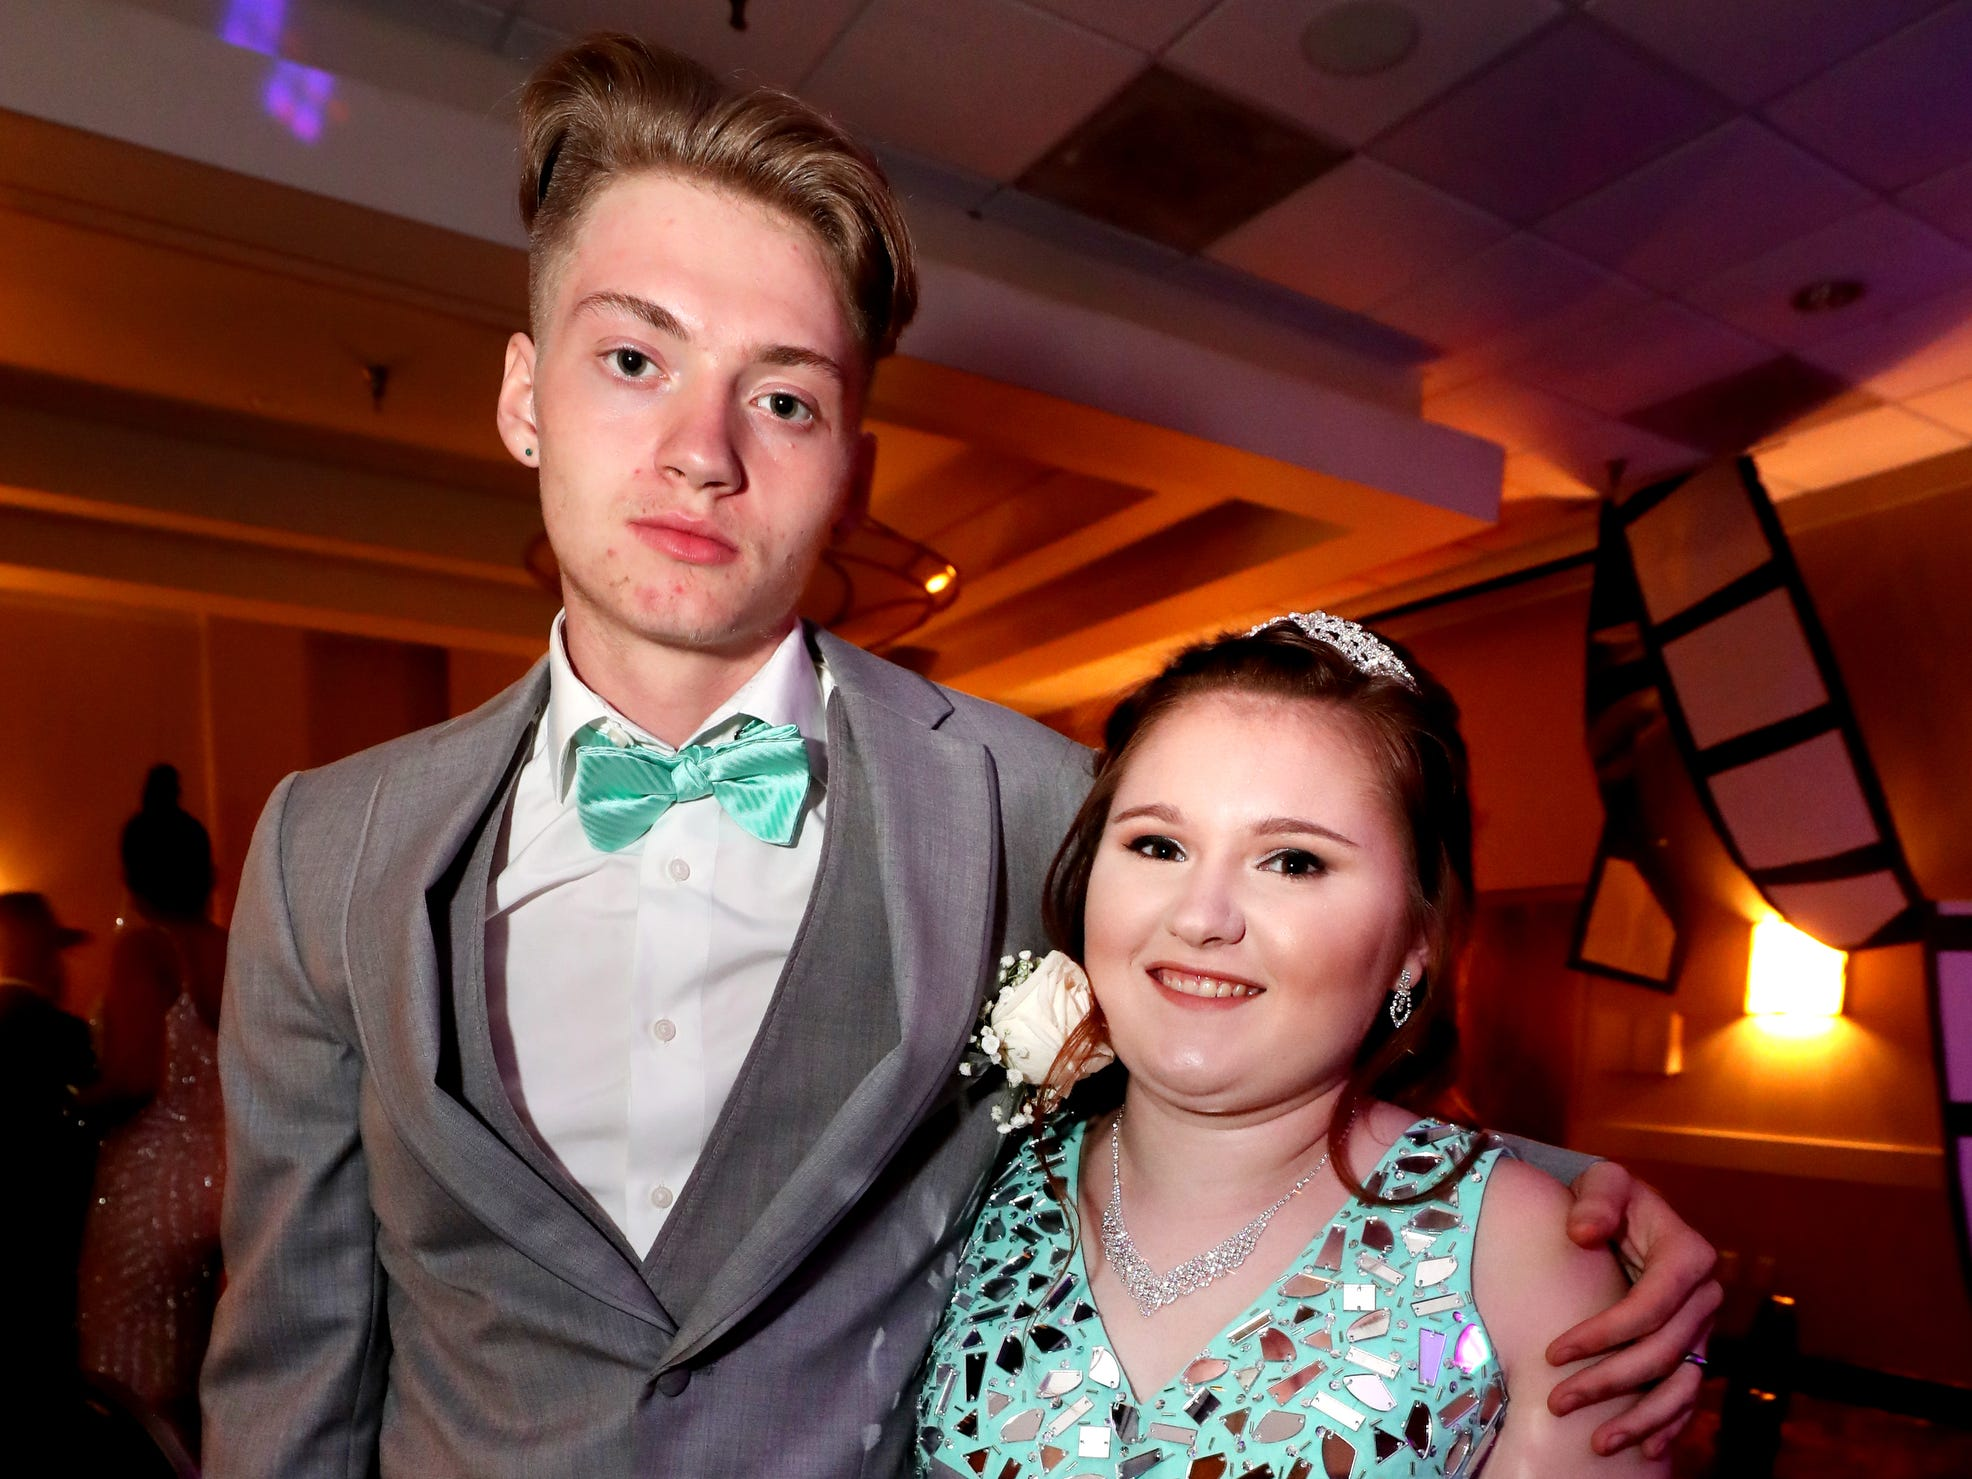 Toby Bramlett, left and Leah Herrod, right at Holloway's prom at the DoubleTree on Thursday April 18, 2019.